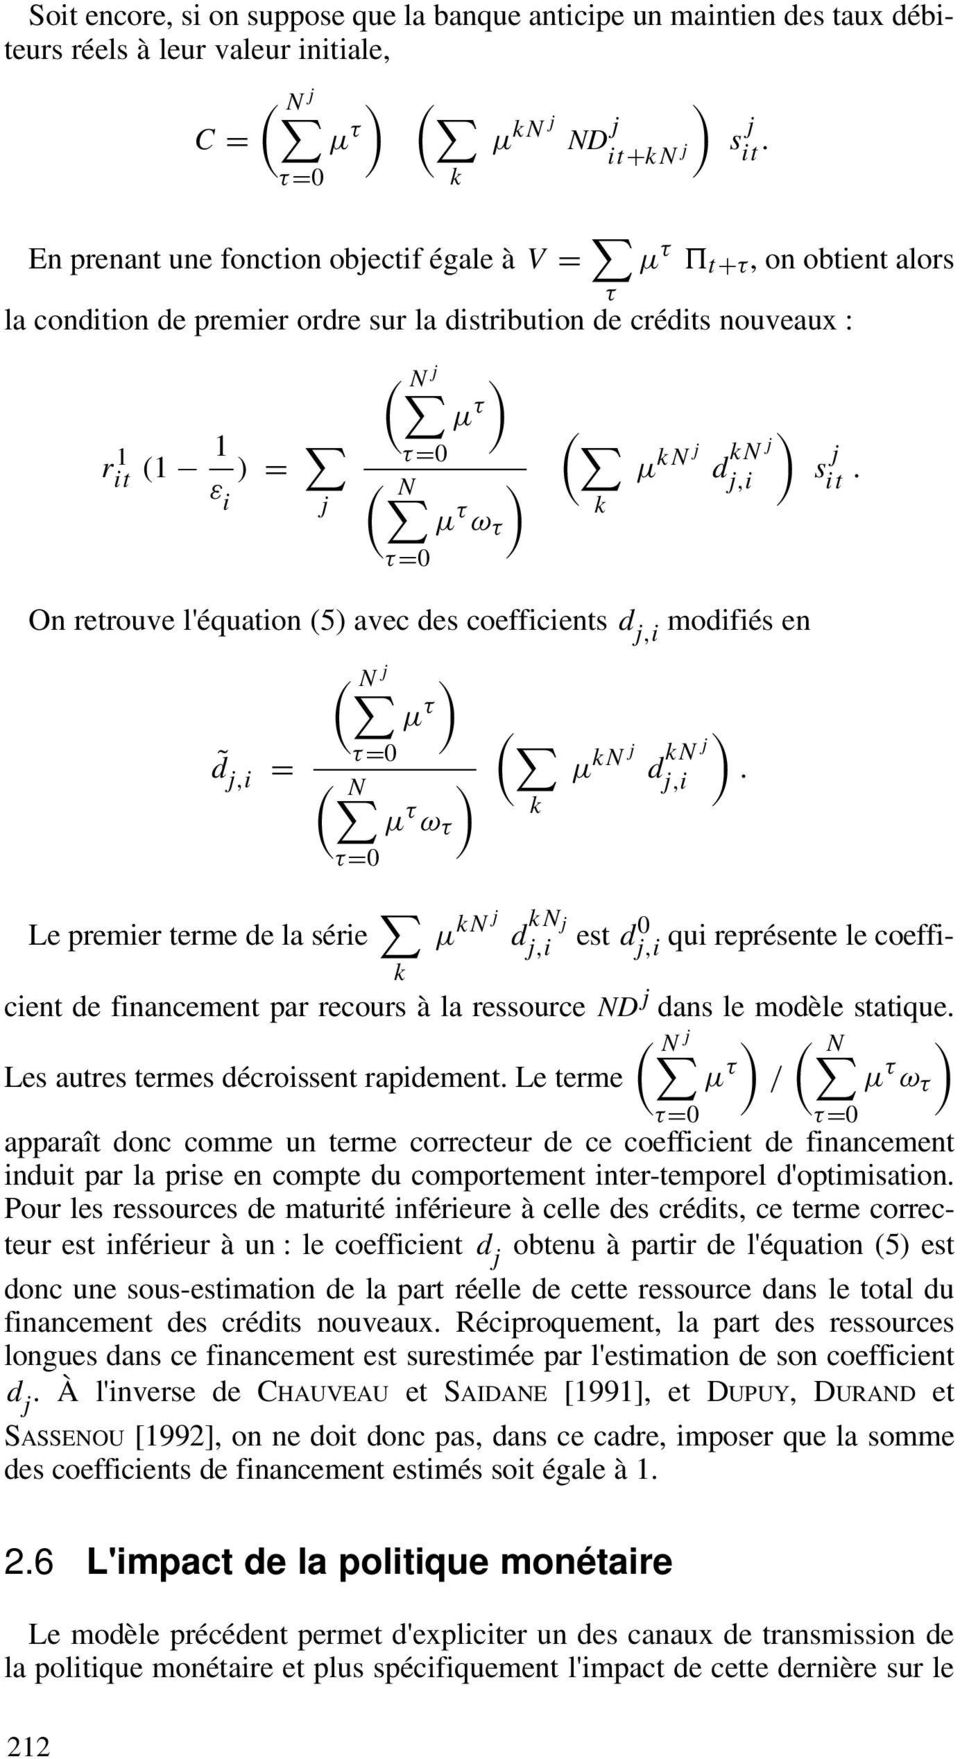 µ kn j d kn j j,i On retrouve l'équation (5) avec des coefficients d j,i modifiés en d j,i = ( N j ) µ τ ( τ=0 ( N ) µ τ k ω τ τ=0 ) µ kn j d kn j j,i. s j.